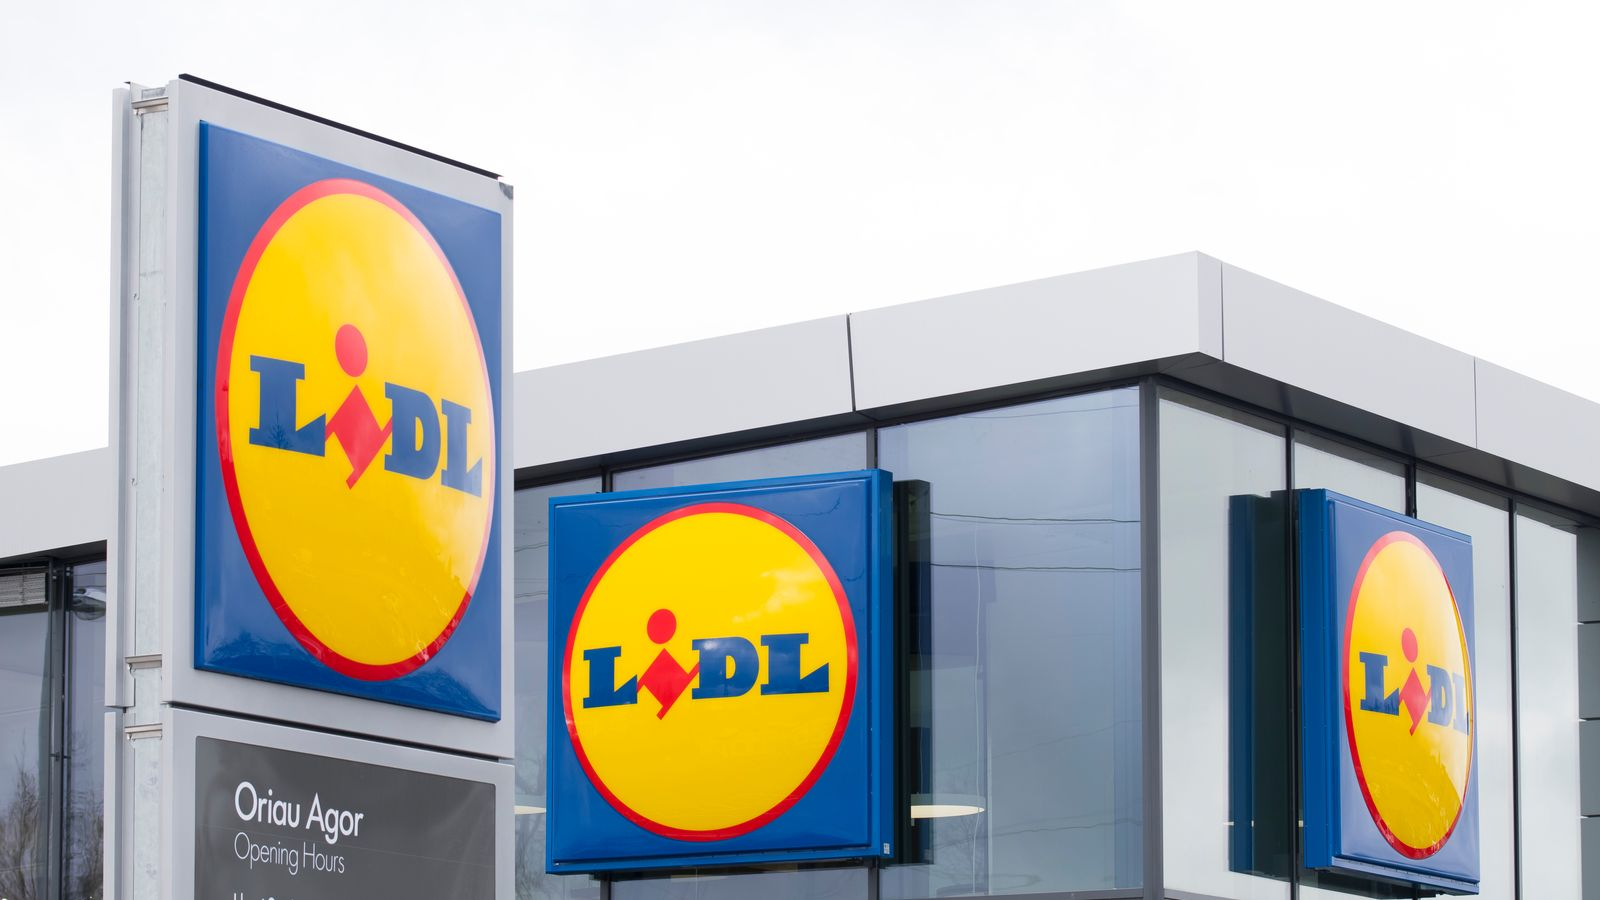 Lidl: Suppliers will pay no-deal Brexit tariffs